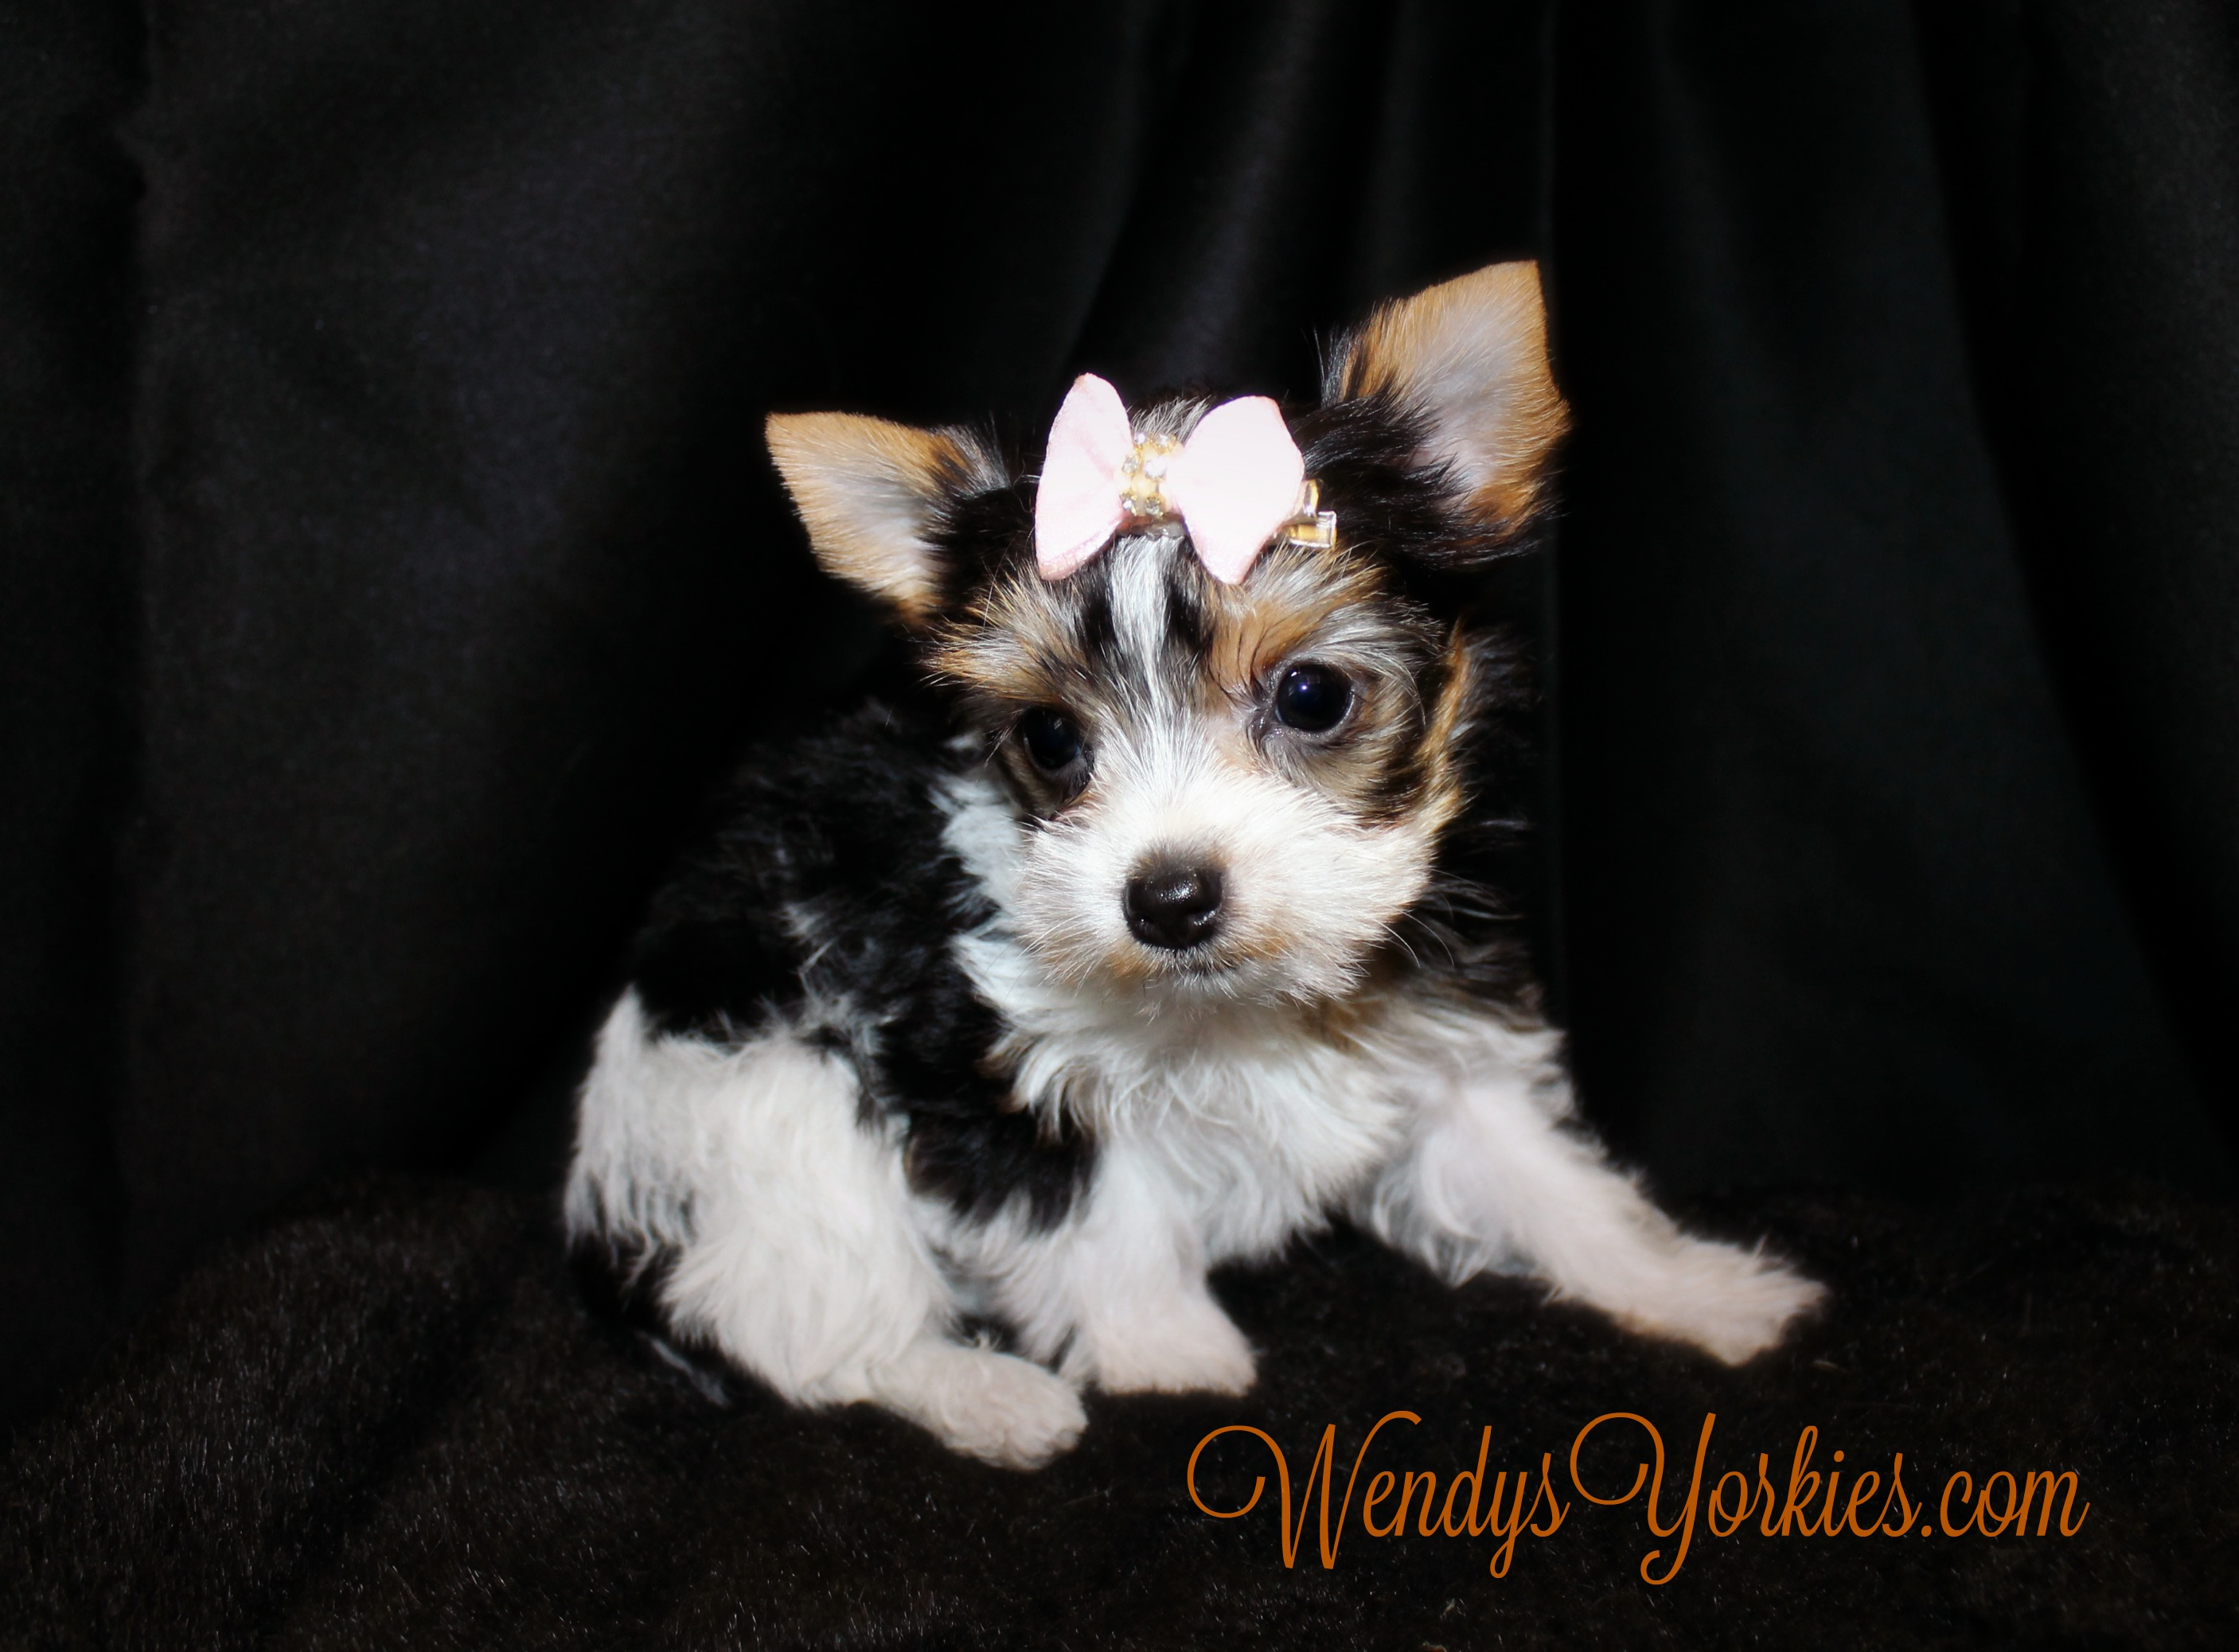 Parti Female Yorkie puppies for sale, WendysYorkies.com, Daisy fp